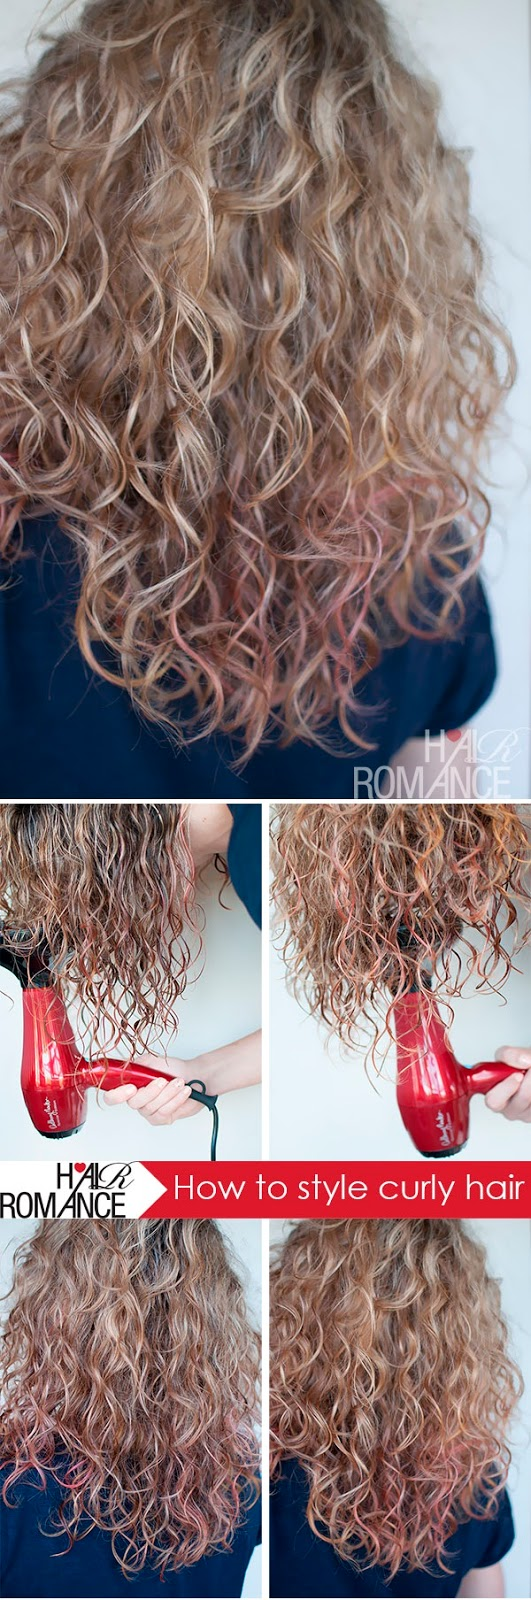 How to style curly hair - Hair Romance